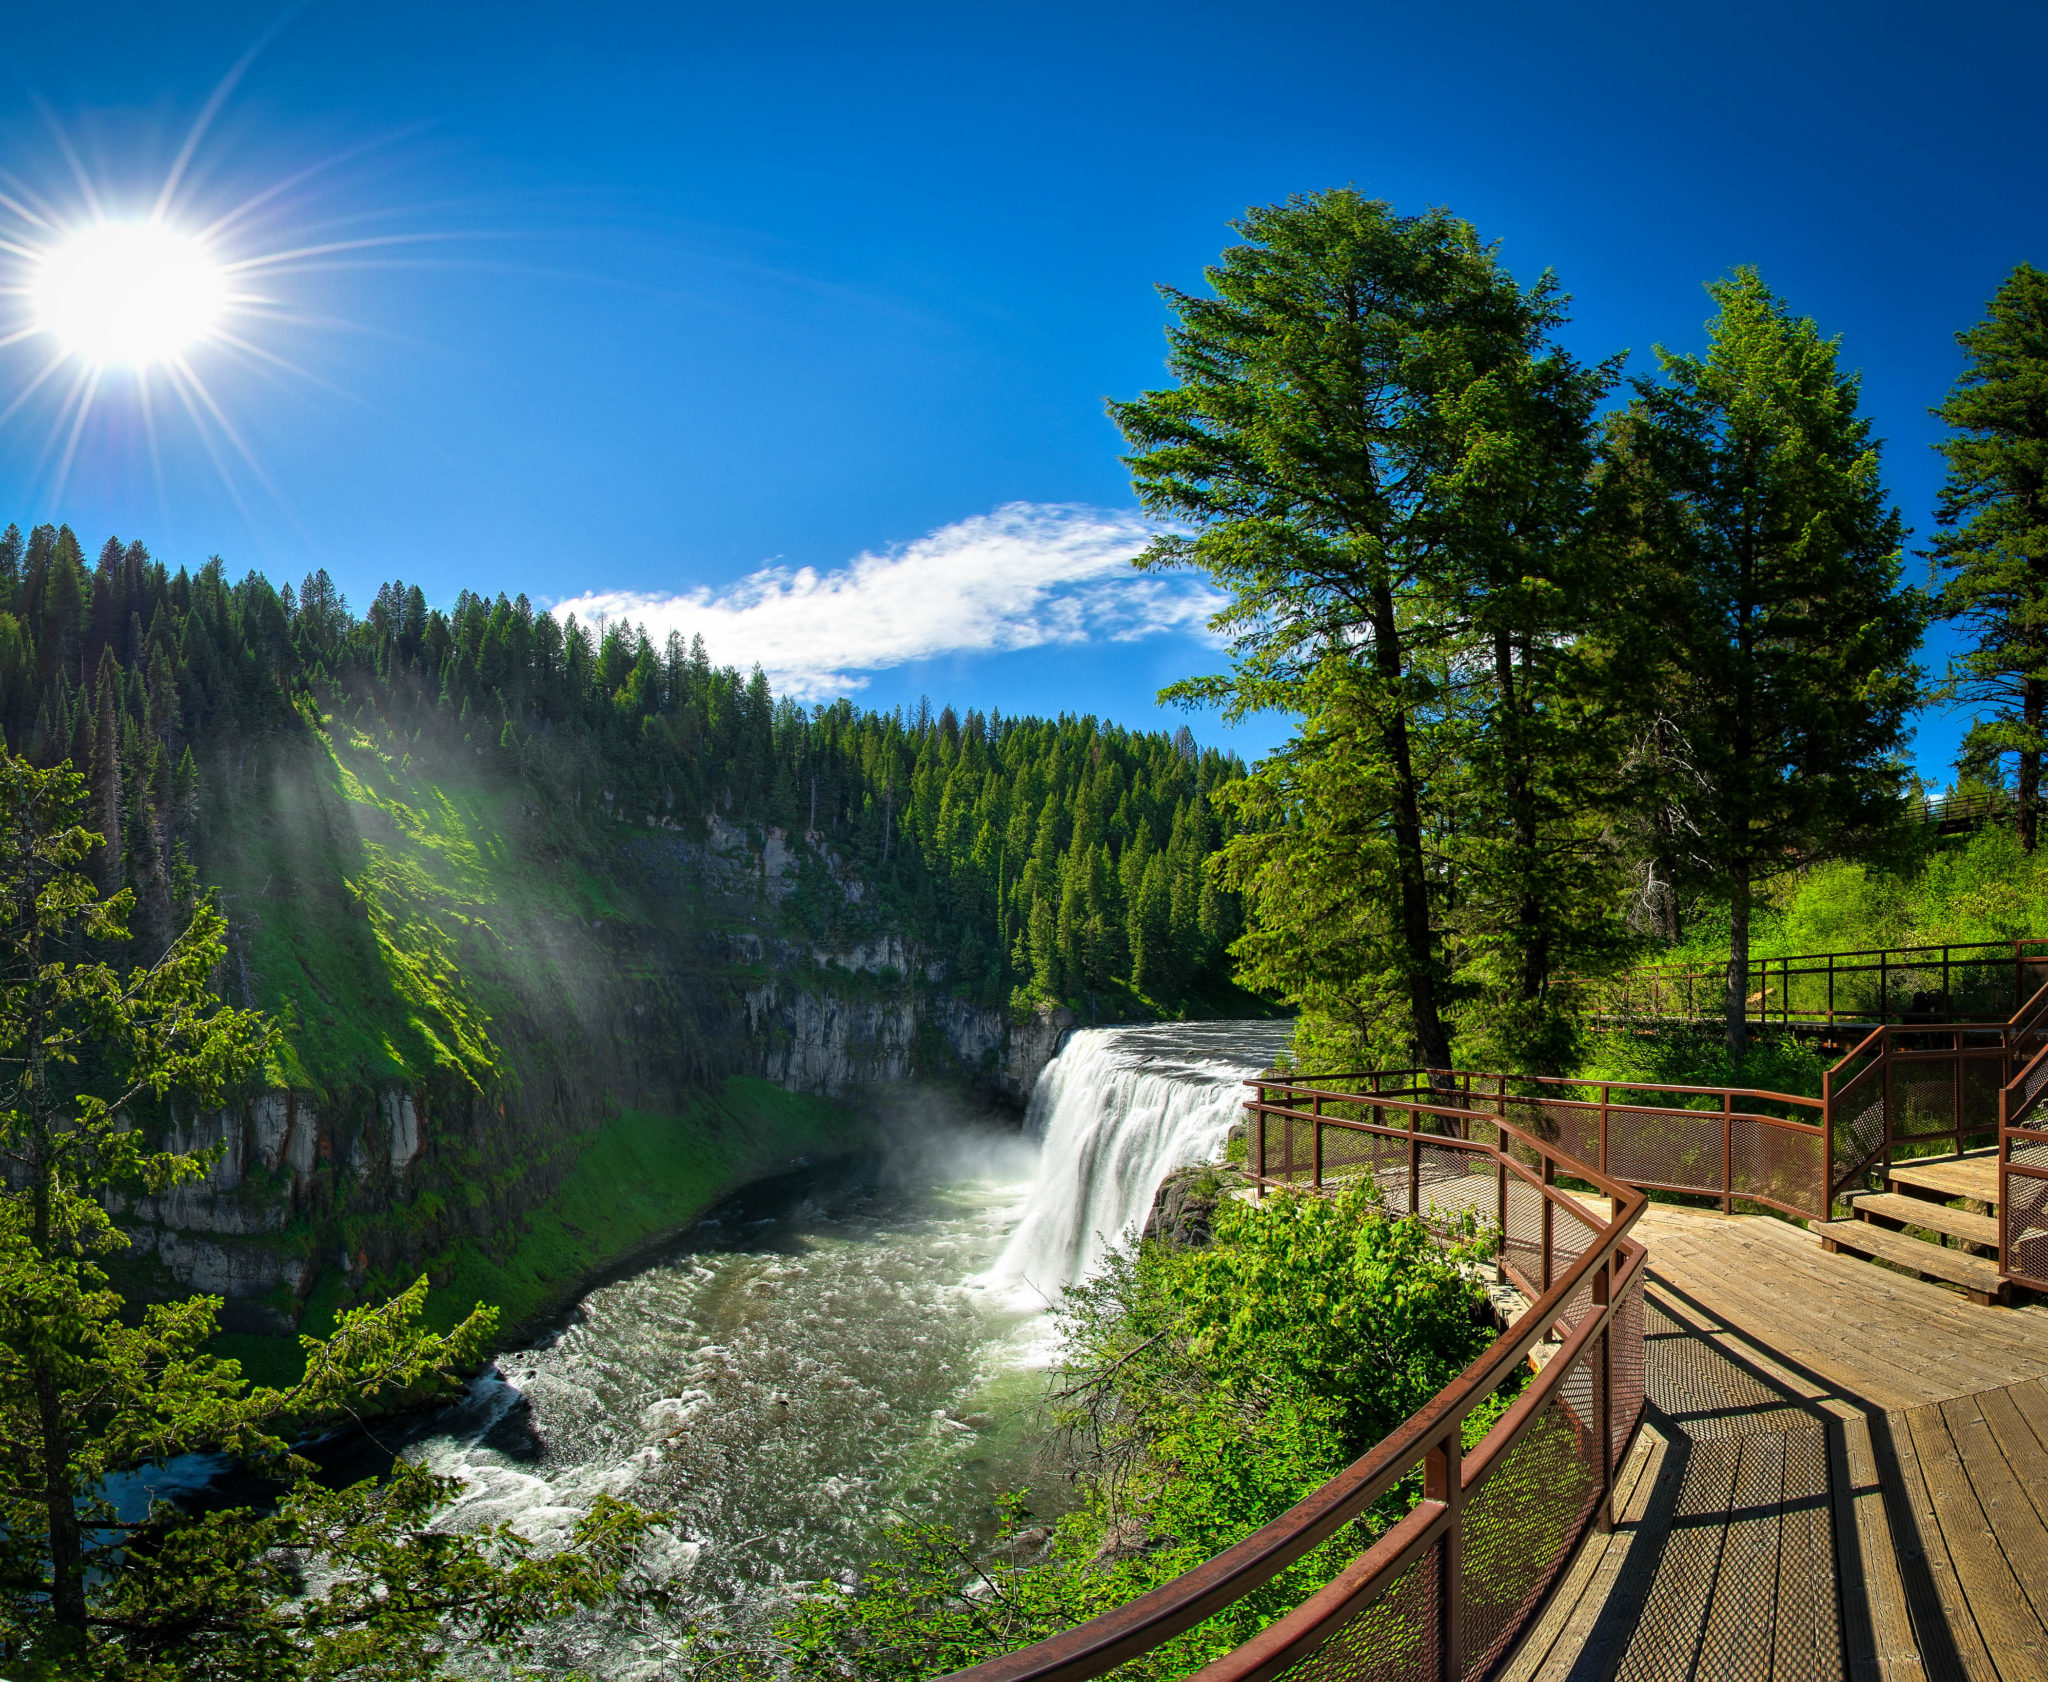 Upper Mesa Falls, Ashton, Idaho. Photo Credit: Idaho Tourism